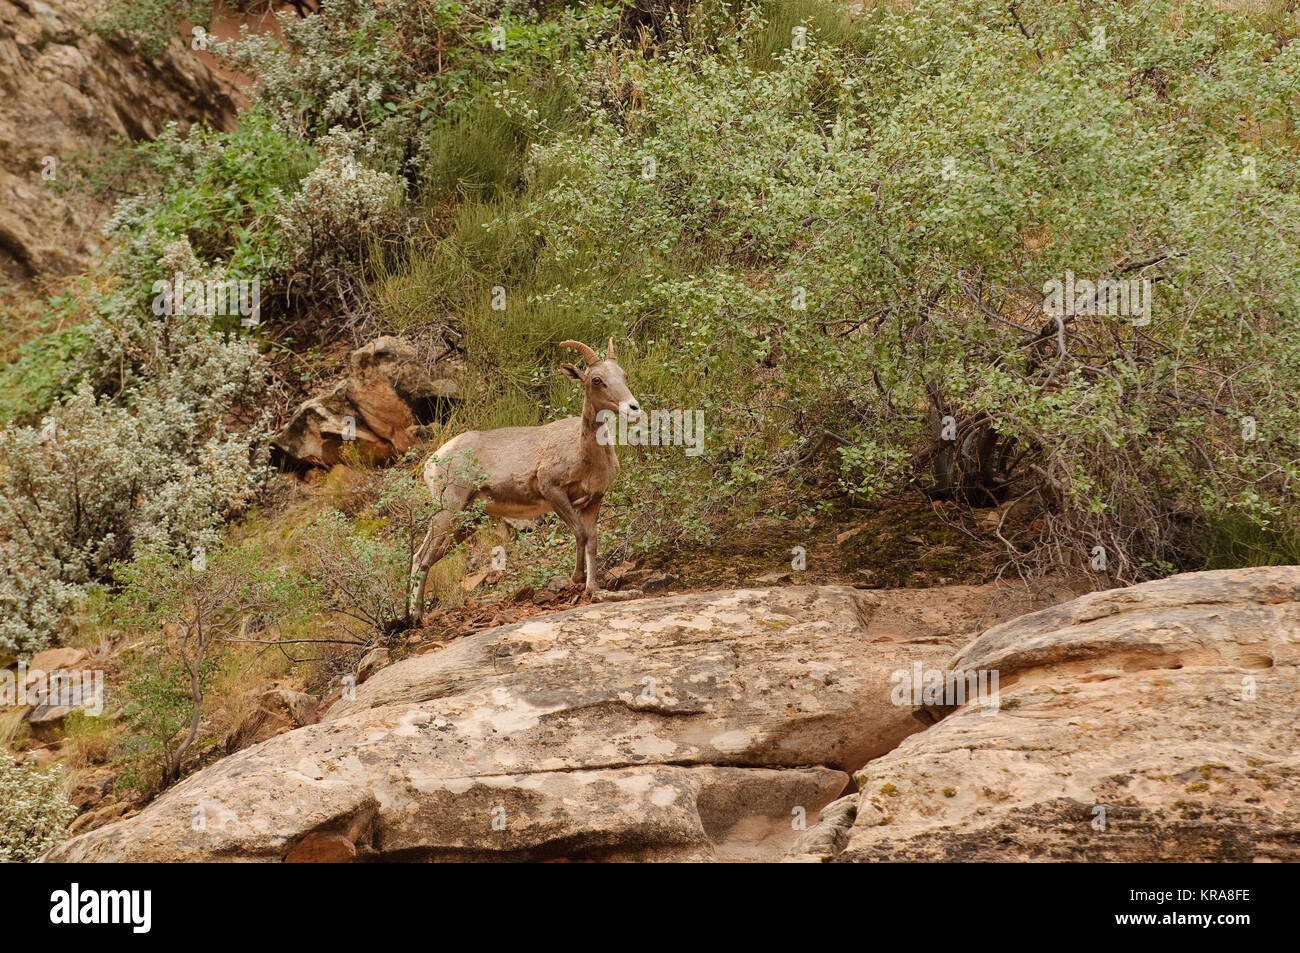 Rocky Mountain sheep (Ovis canadensis) in Cedar breaks National Park, Utah, USA - Stock Image